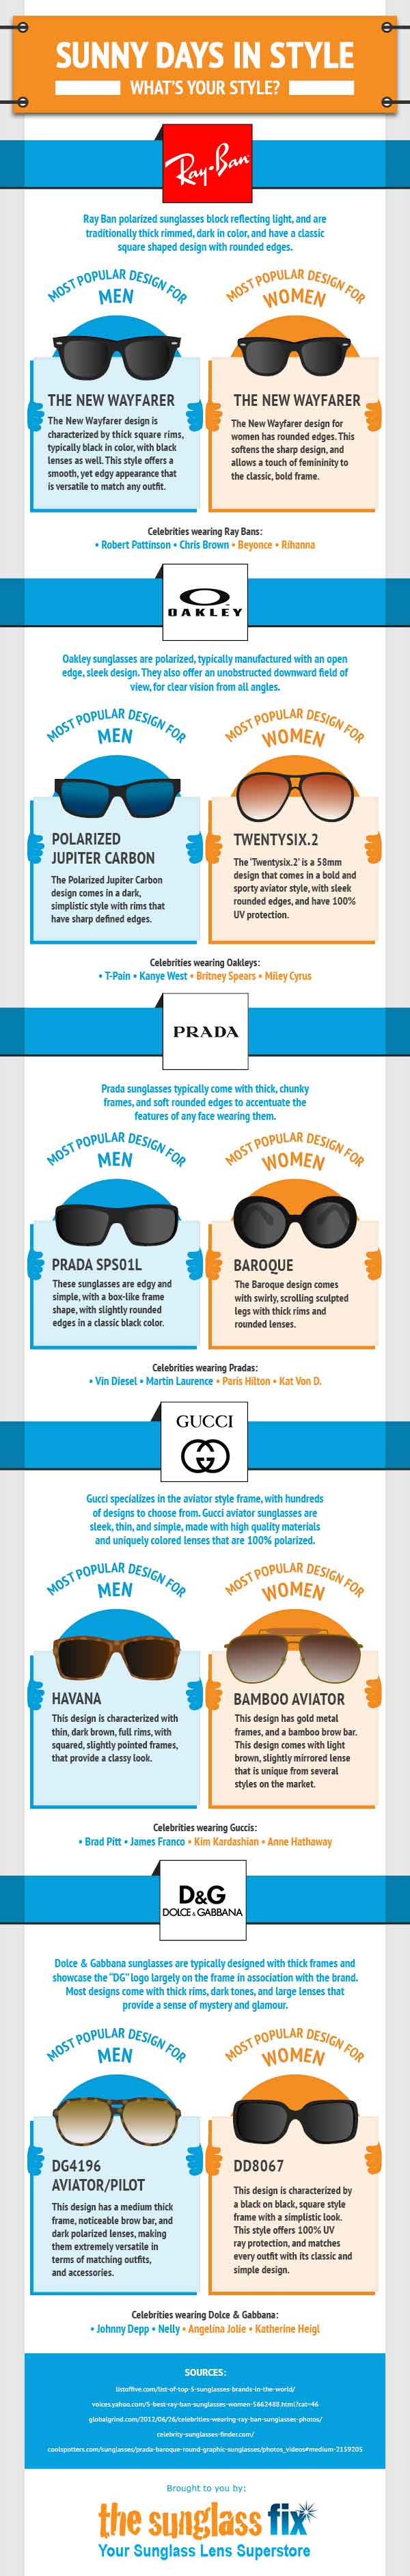 Sunny Days In Style Infographic